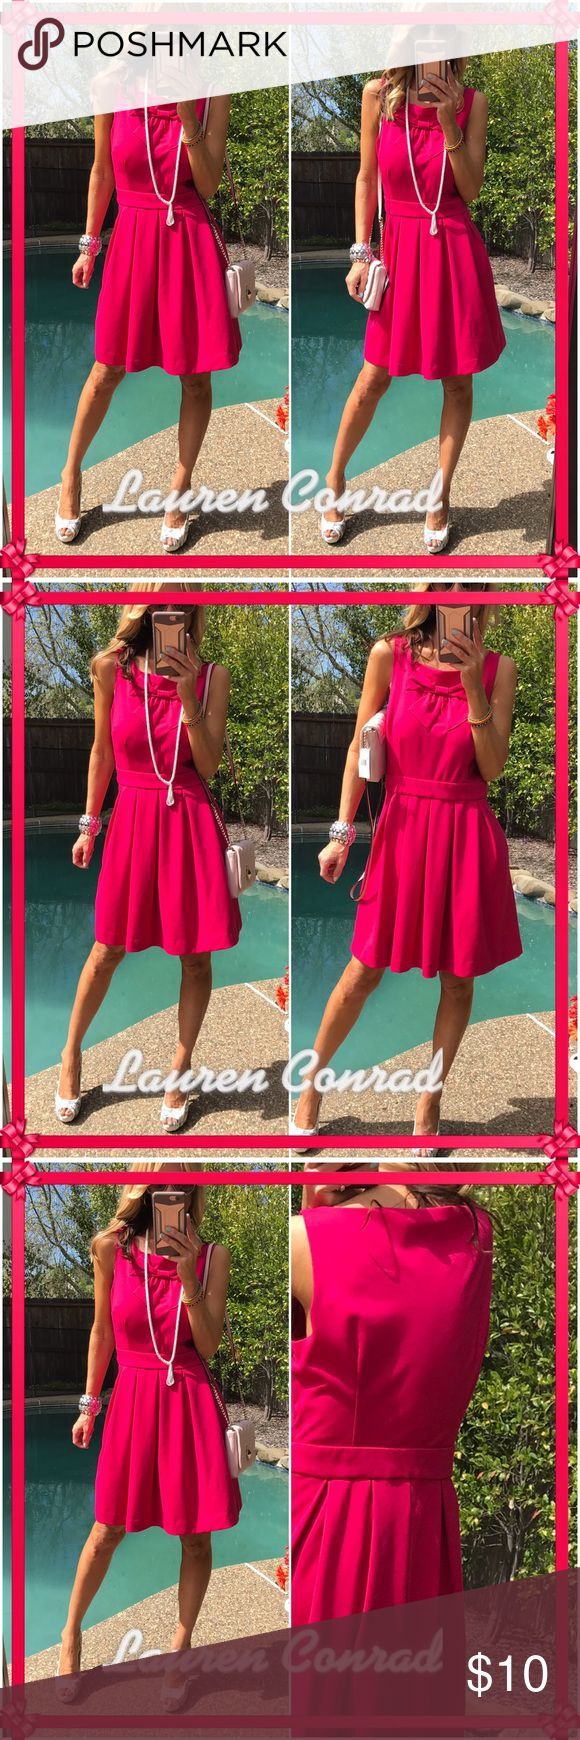 🎉LC🎉 Talk about spring ready and color- this vibrant dress is all about comfort as is LC-now style front, lots of coverage for comfort. Just everyday fabulous piece to have. Great condition practically new- bigger size clipped for better photo. Use size chart online for measurements👍 LC Lauren Conrad Dresses Midi